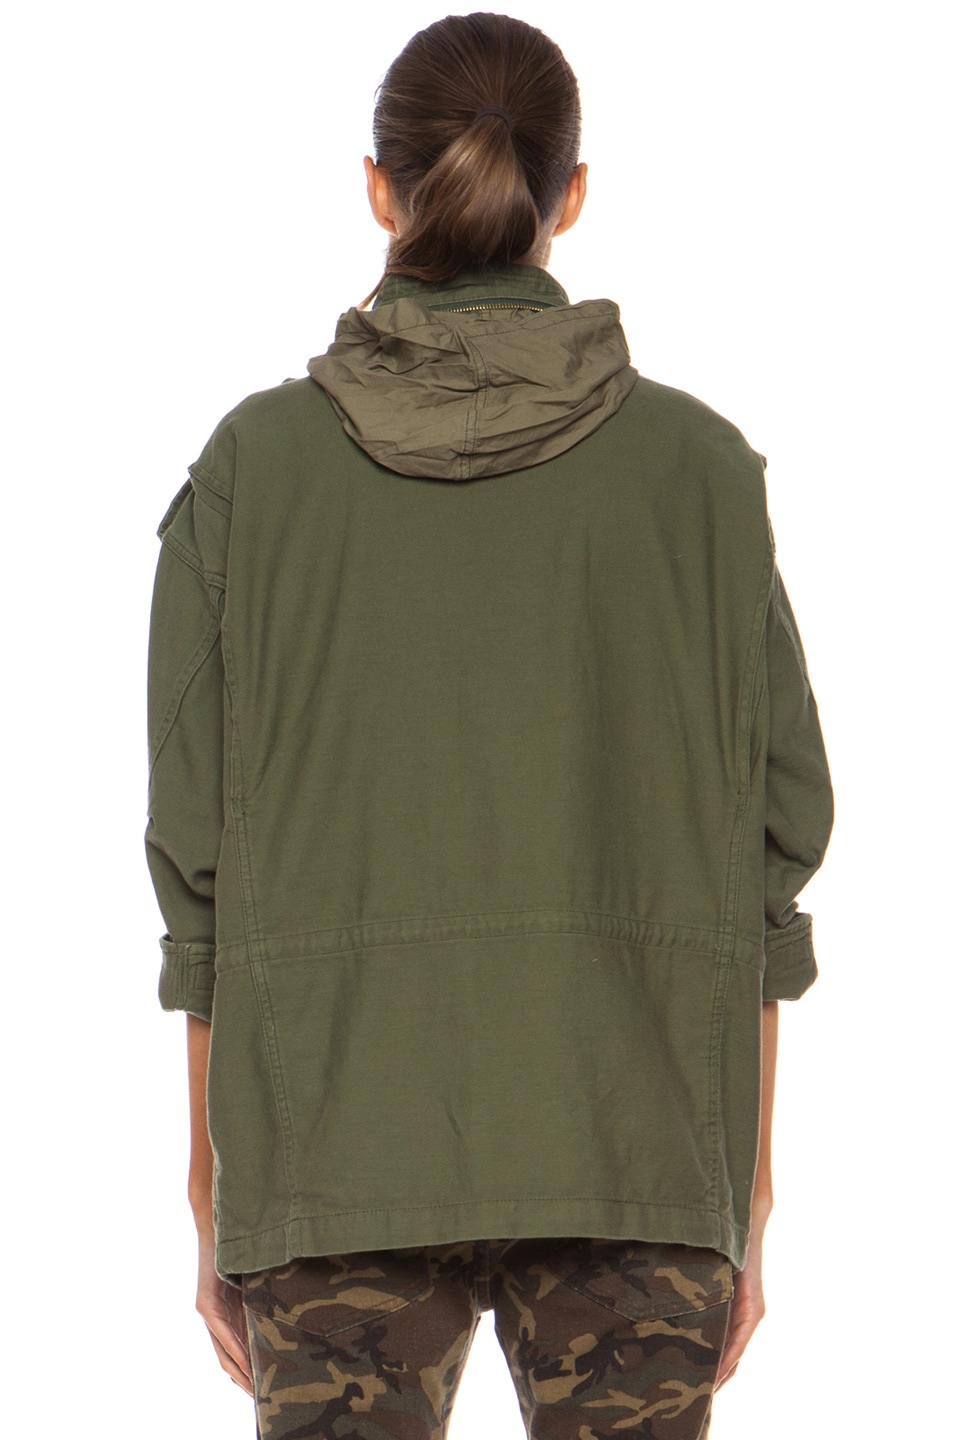 Image 5 of NLST Oversized Cotton M65 Jacket in Olive Drab